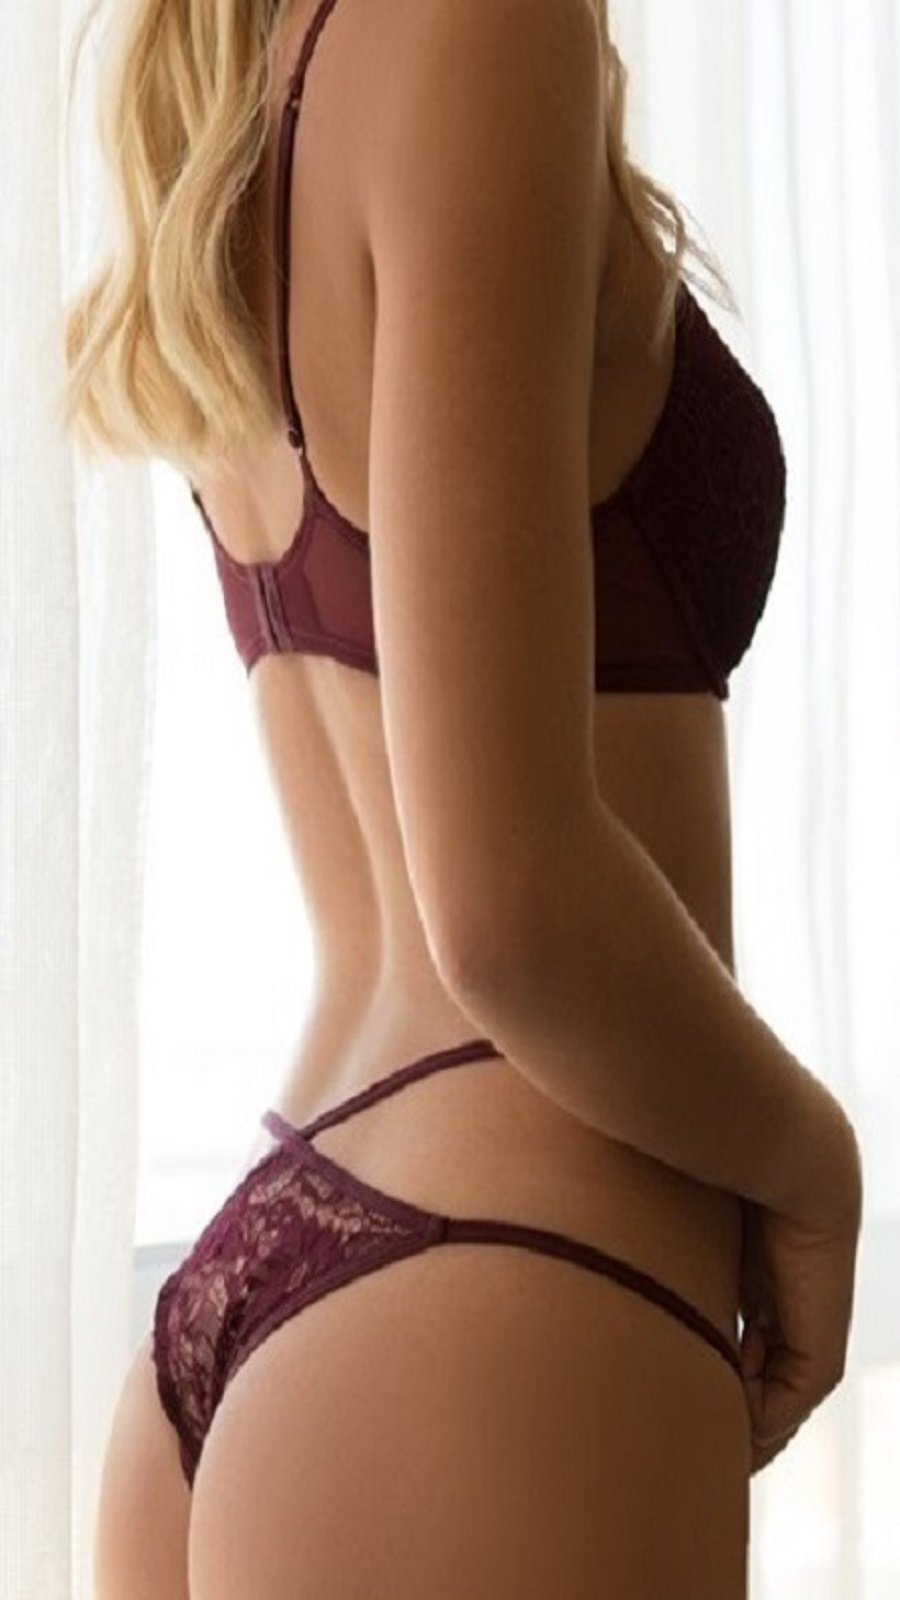 If you are looking for the perfect companion tonight give us a call on 07399733096 to book Anastasia for the best night of your life.